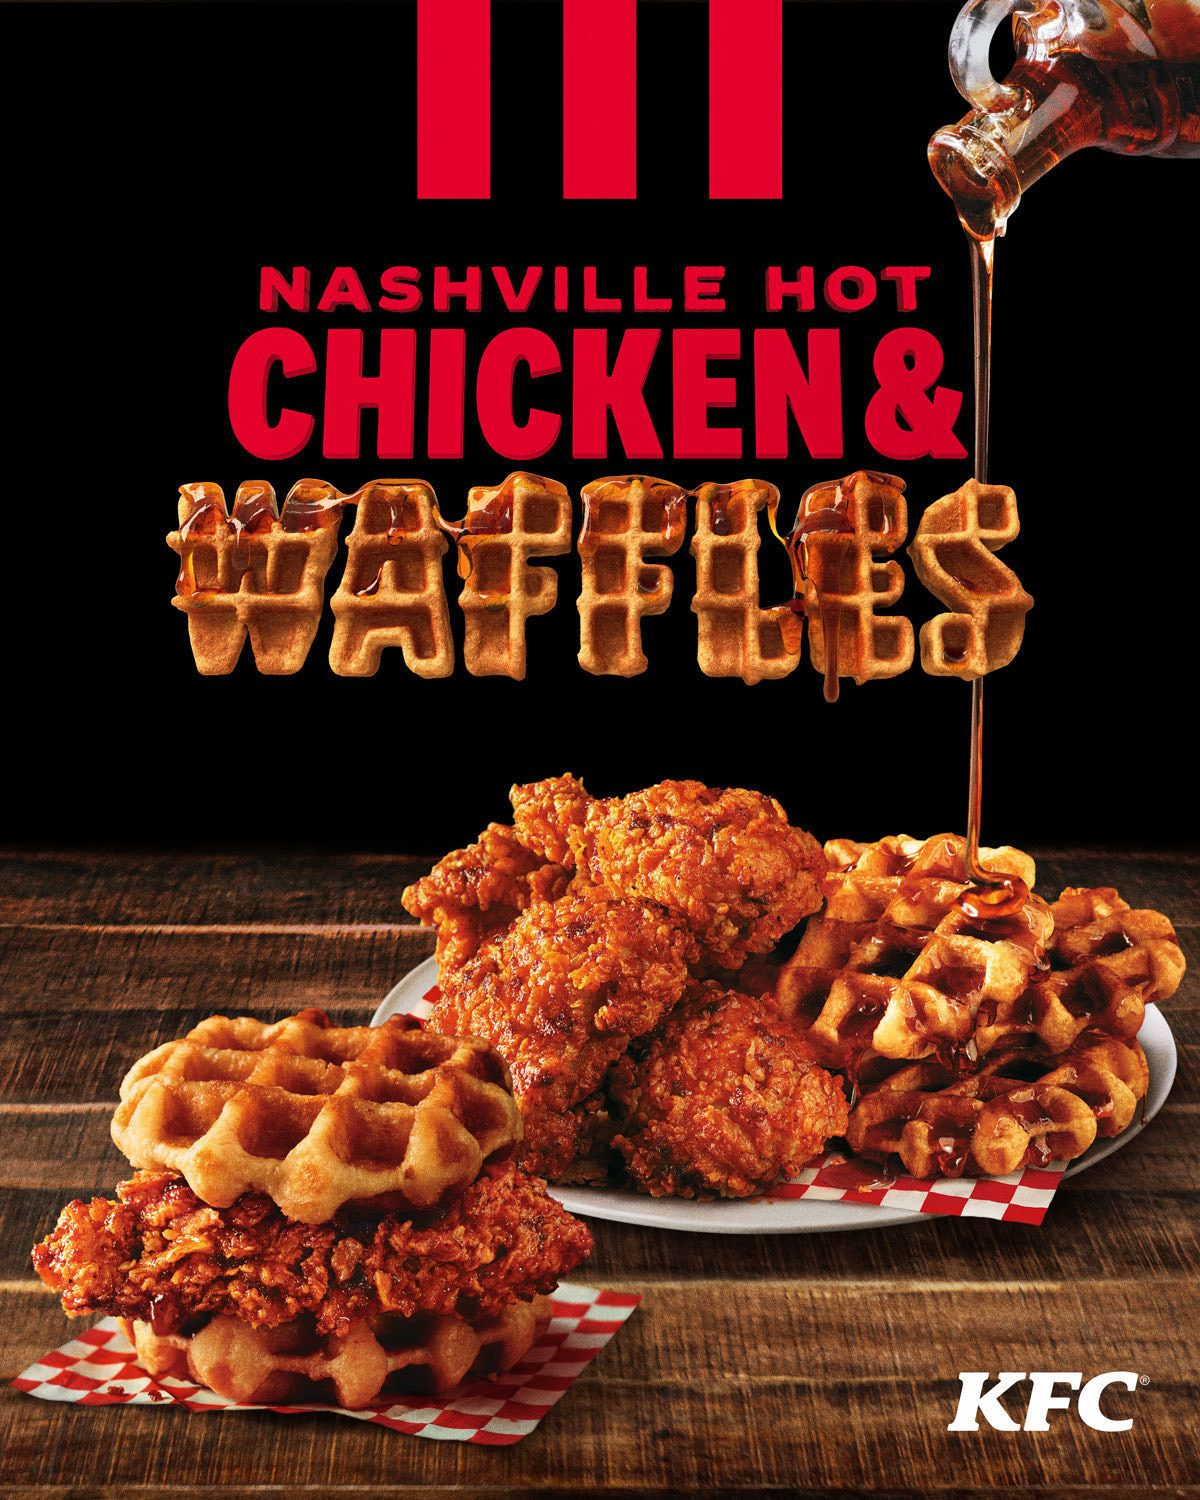 KFC Is Now Making Nashville Hot Chicken And Waffles, And It Sounds Like A Perfect Winter Comfort Food